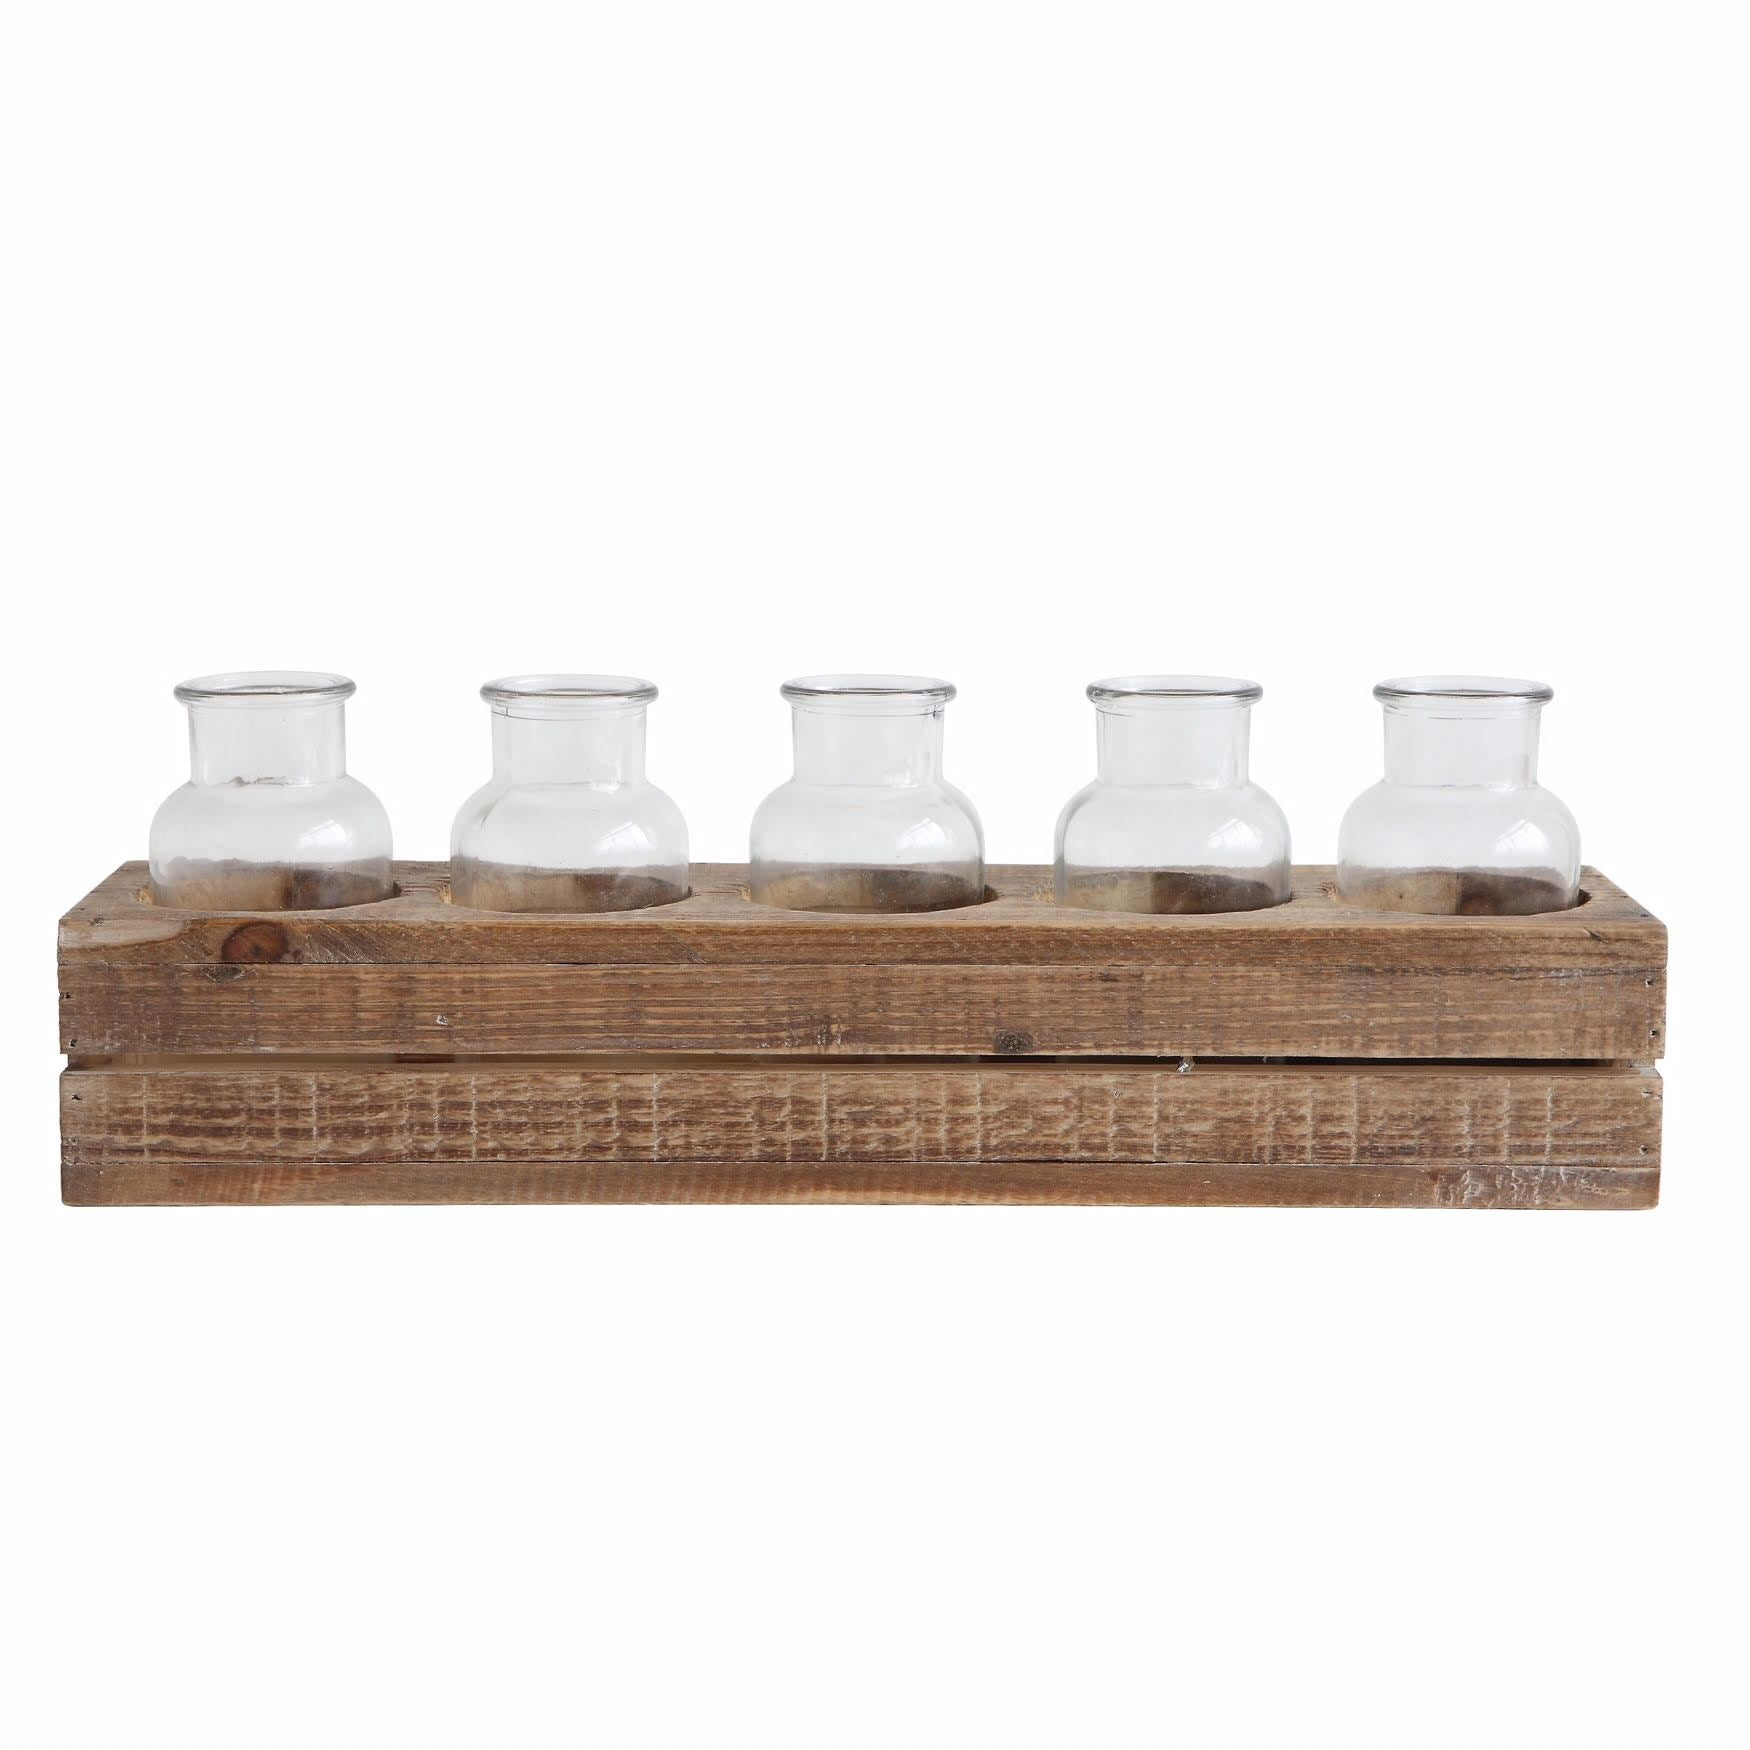 Wood Crate with 5 Glass Bottles